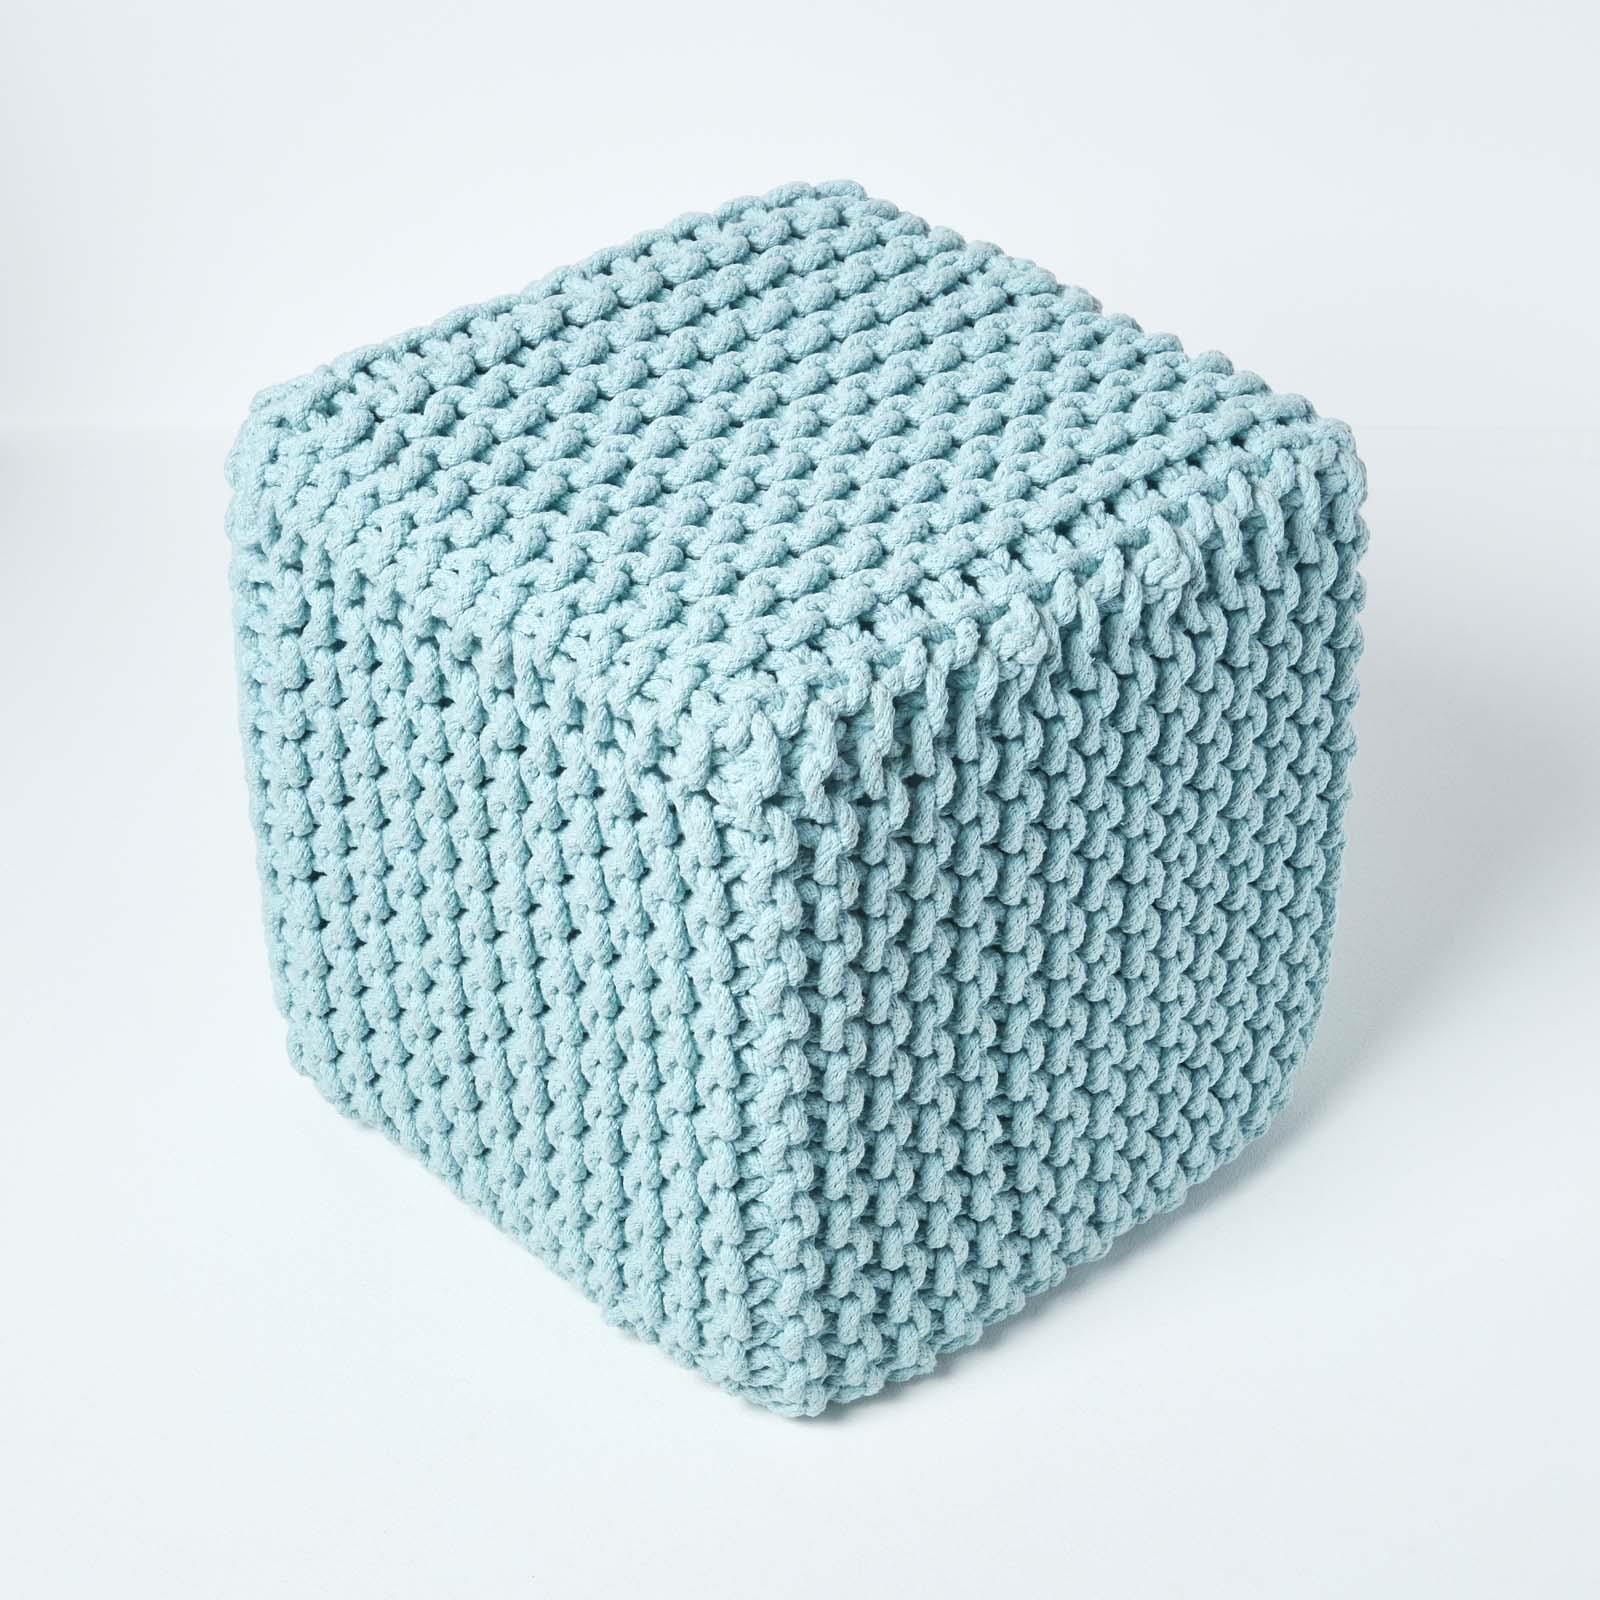 Hand-Knitted-100-Cotton-Pouffes-Round-Sphere-Or-Cube-Square-Chunky-Footstools thumbnail 135